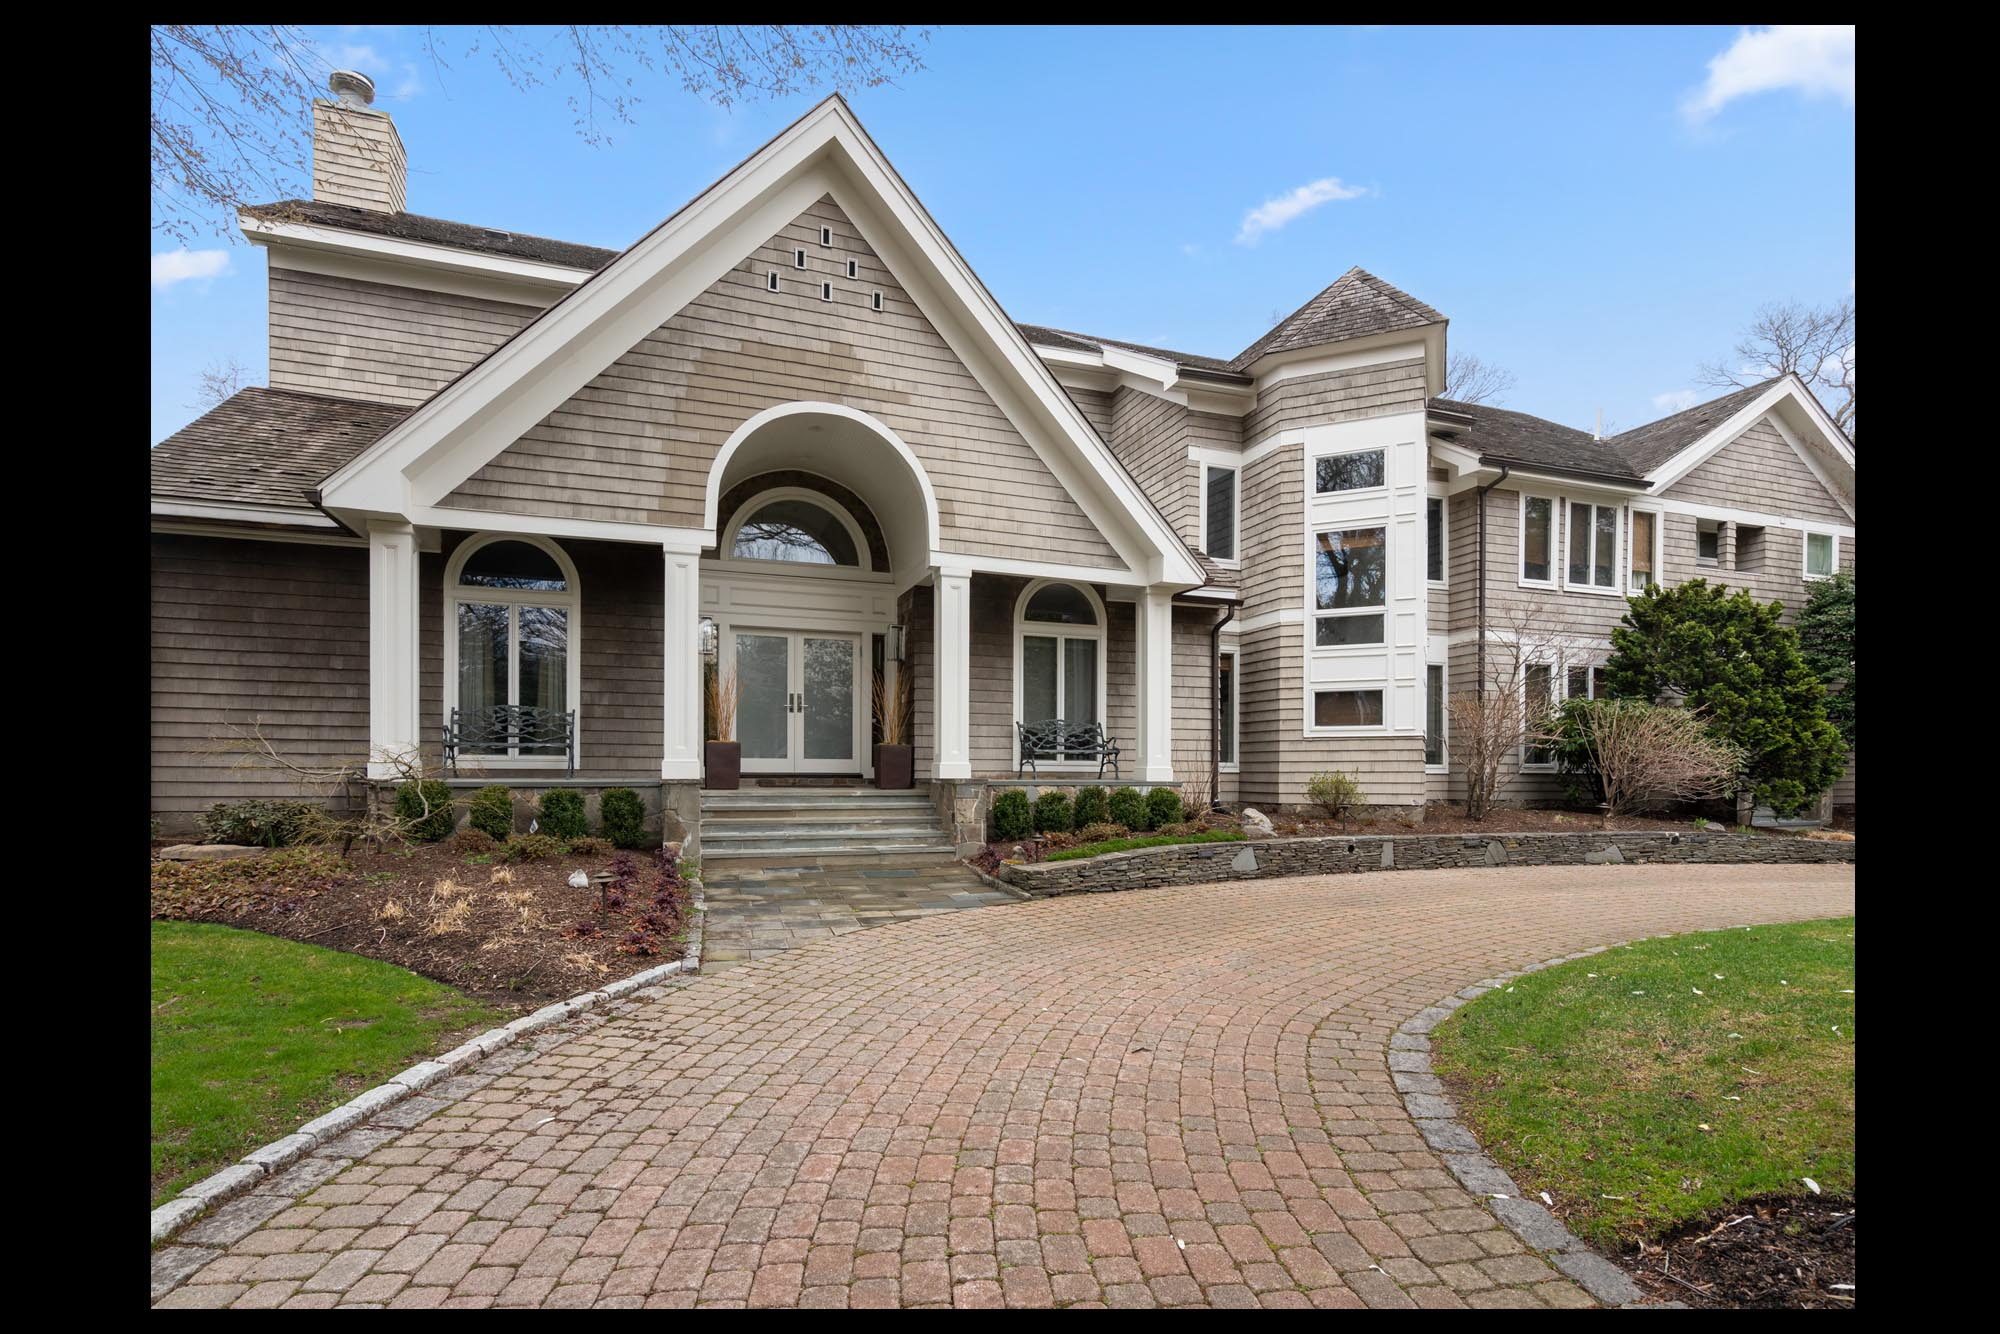 8 Sears Rd. Brookline - $5,950,000